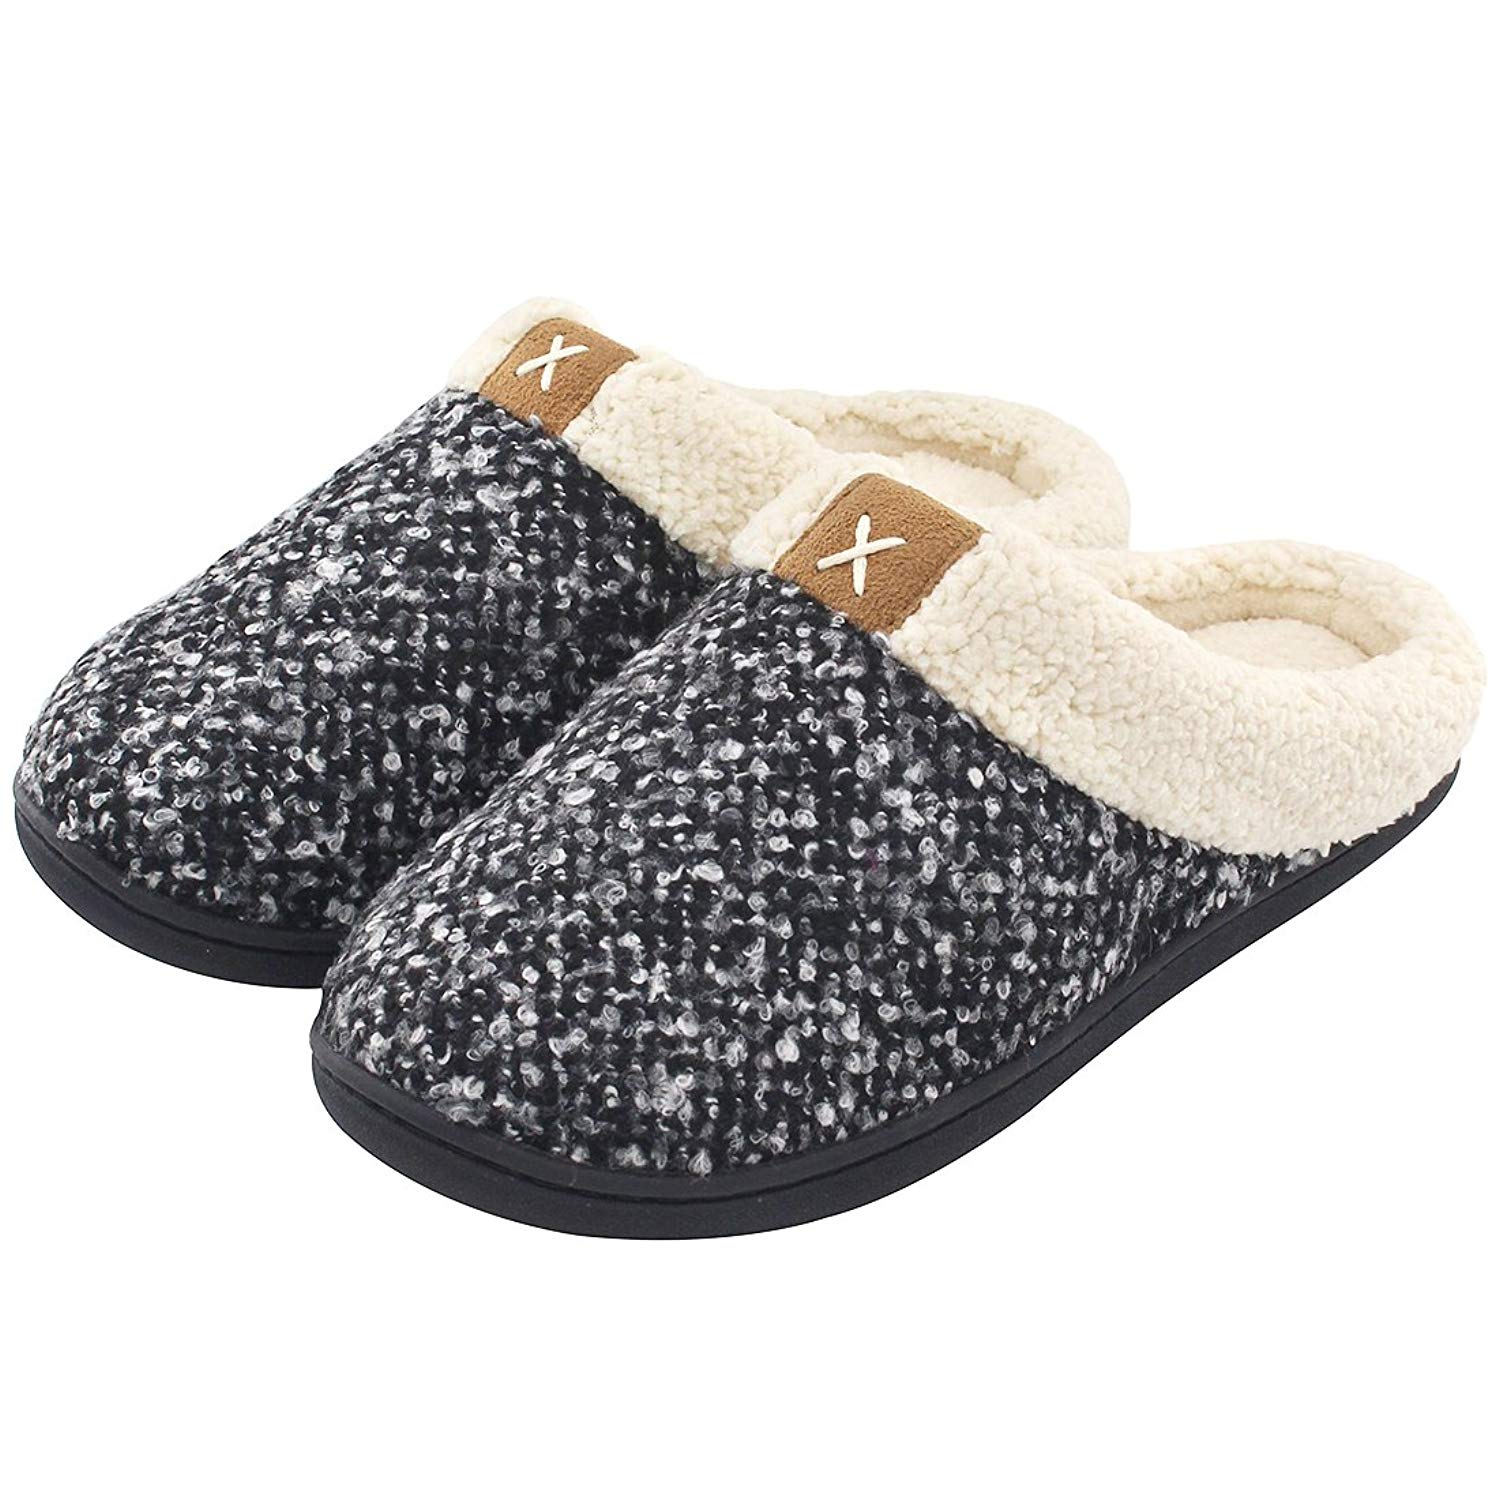 Women's Cozy Memory Foam Slippers Fuzzy Wool-Like Plush Fleece Lined House  Shoes w/